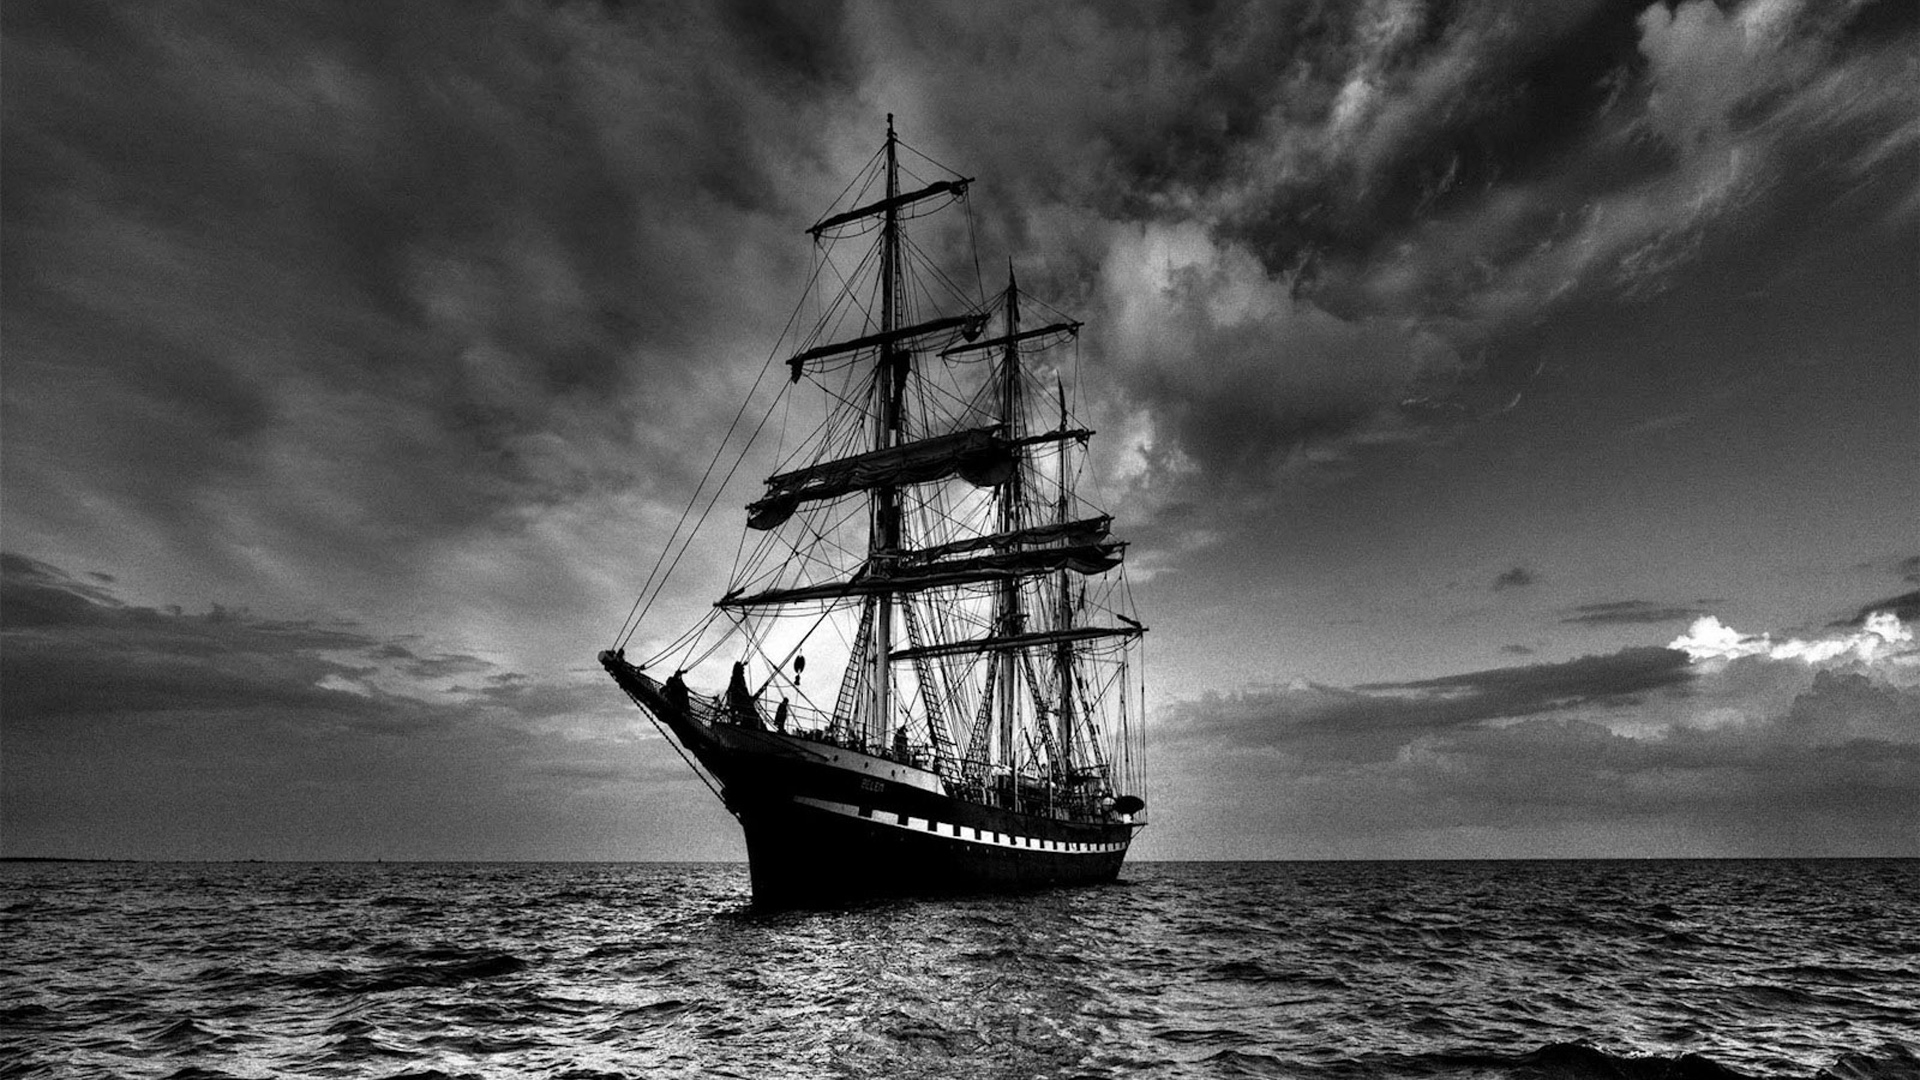 Sailing Quotes And Sayings Quotesgram: Quotes On Your Sailing Ship. QuotesGram